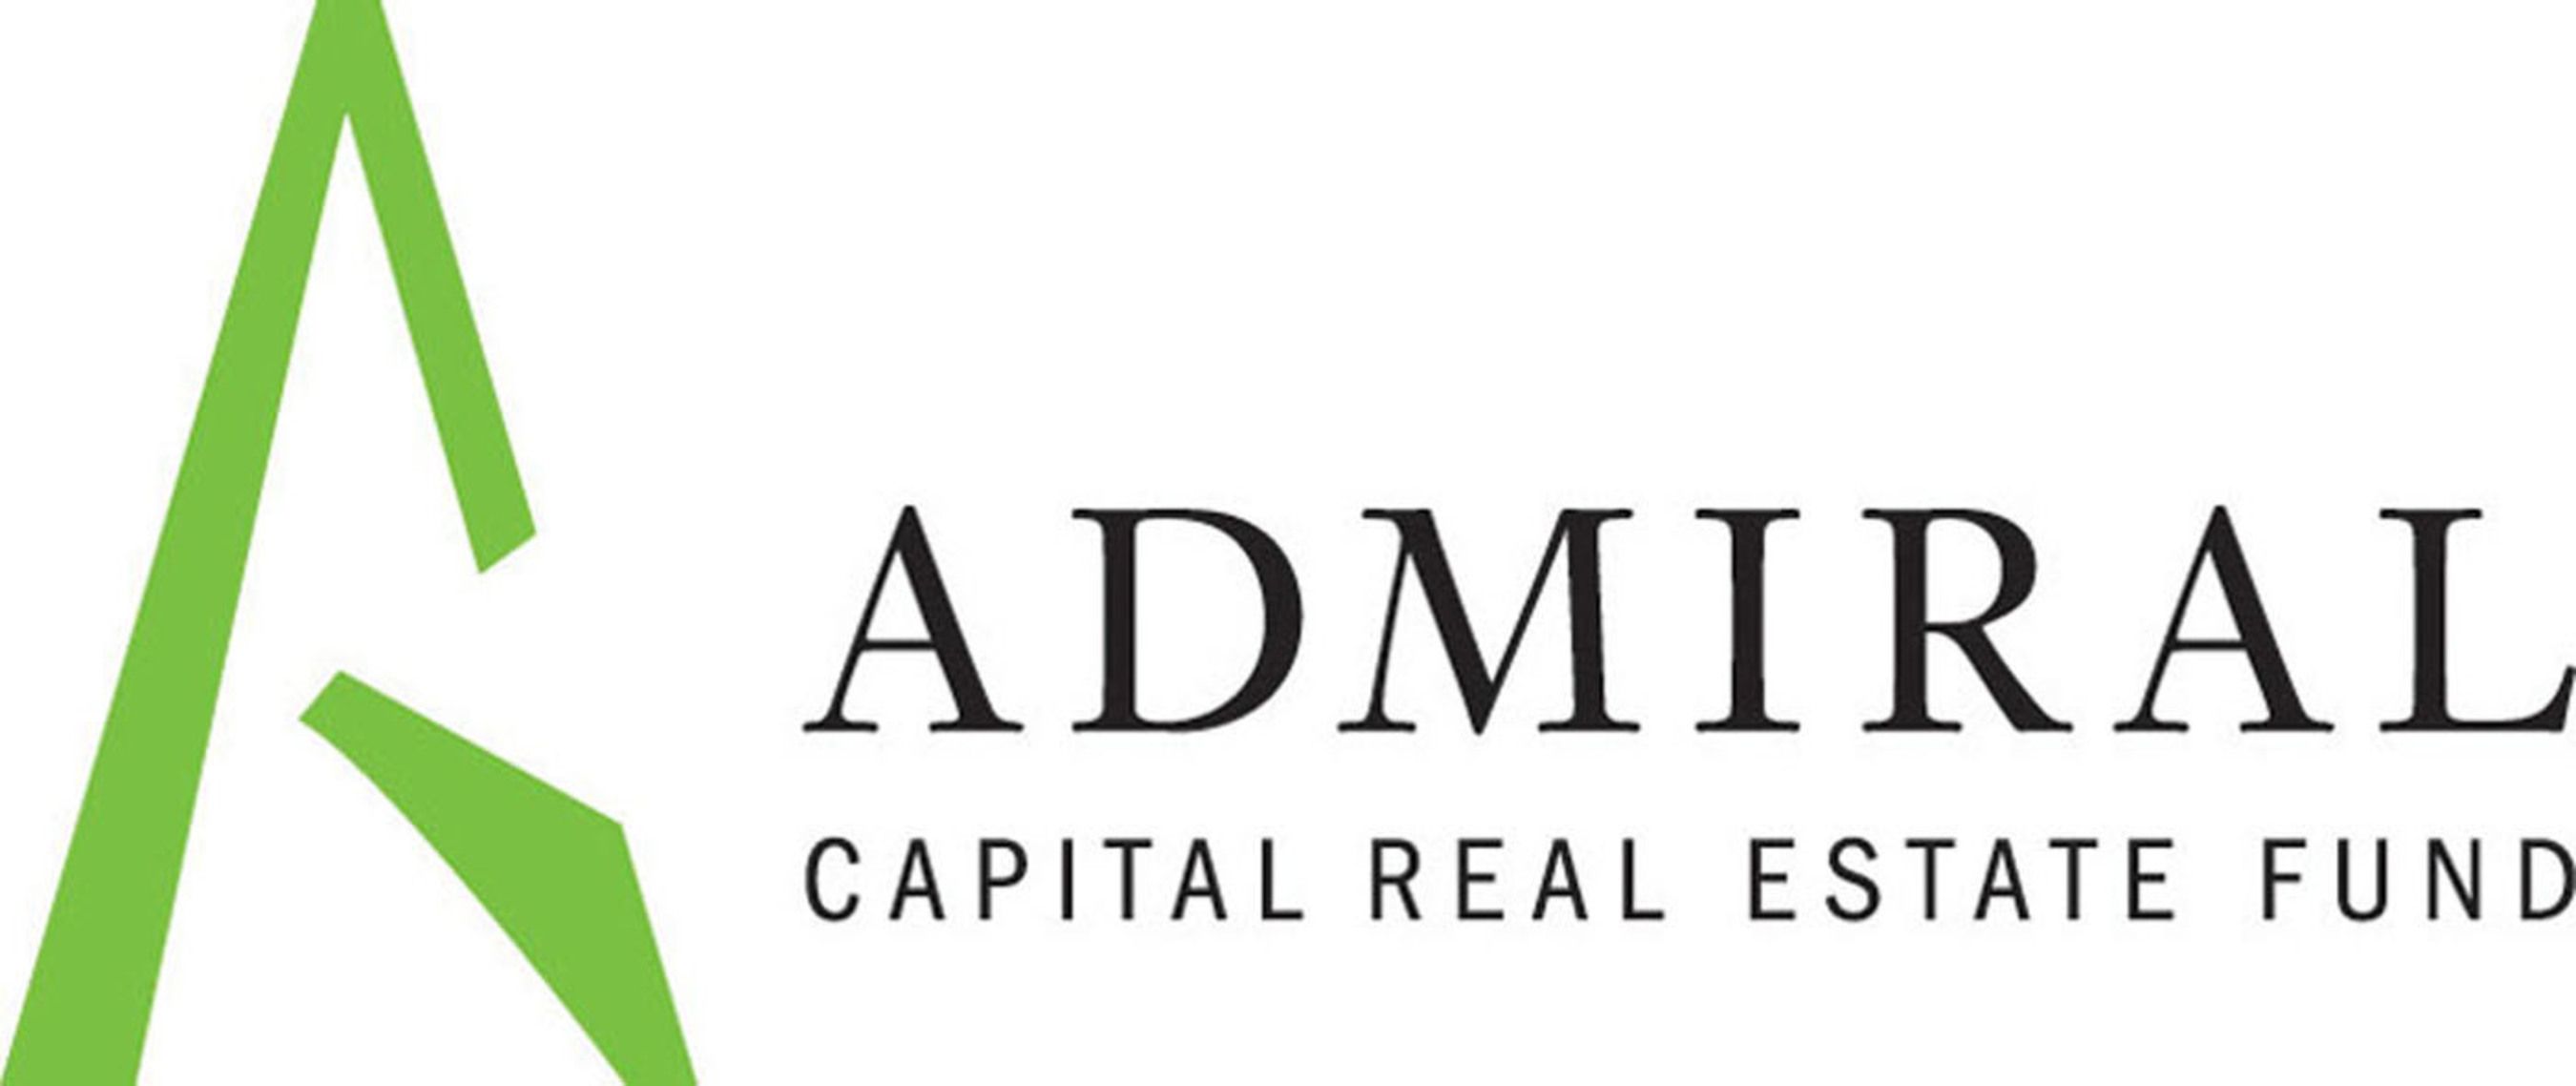 Admiral Capital Real Estate Fund logo.